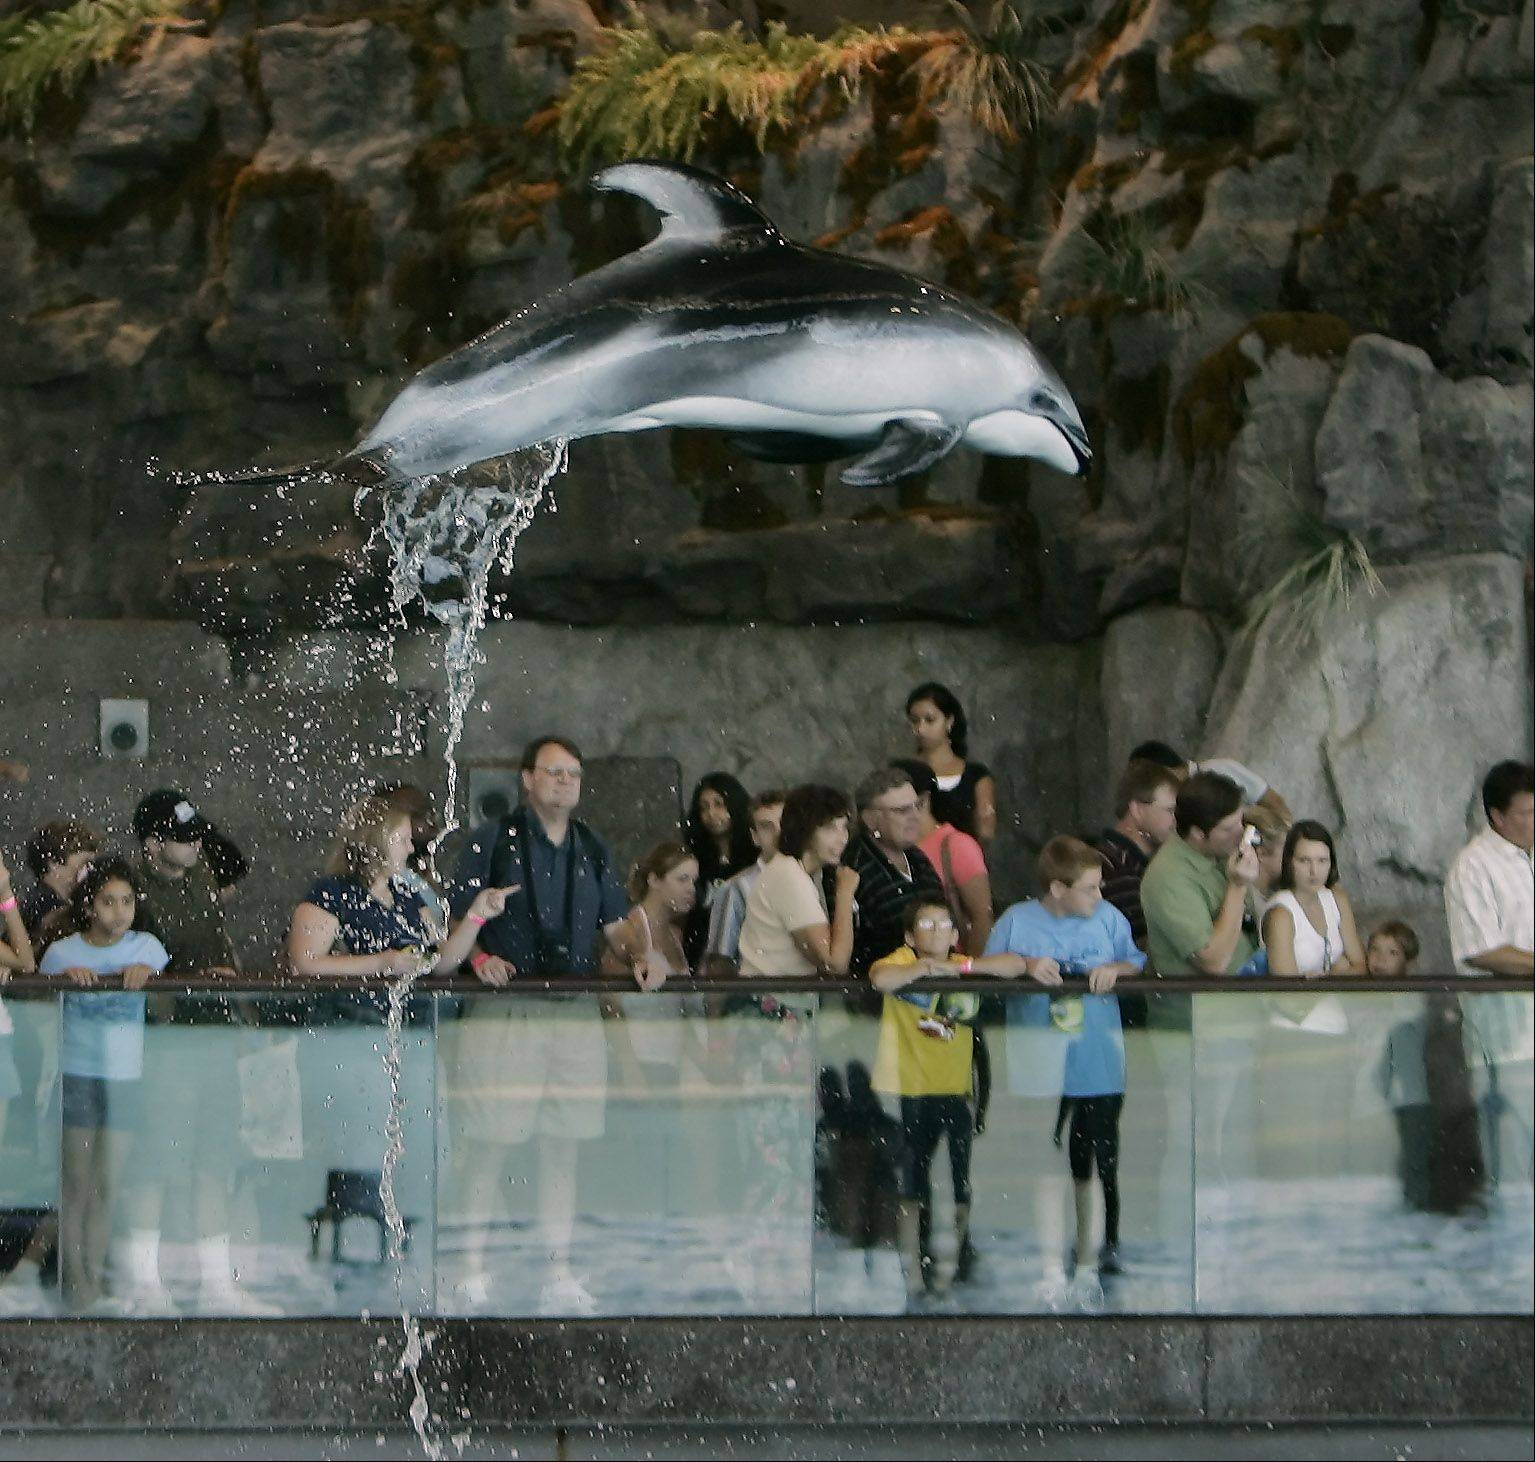 2.1 million guests visited Shedd in 2011